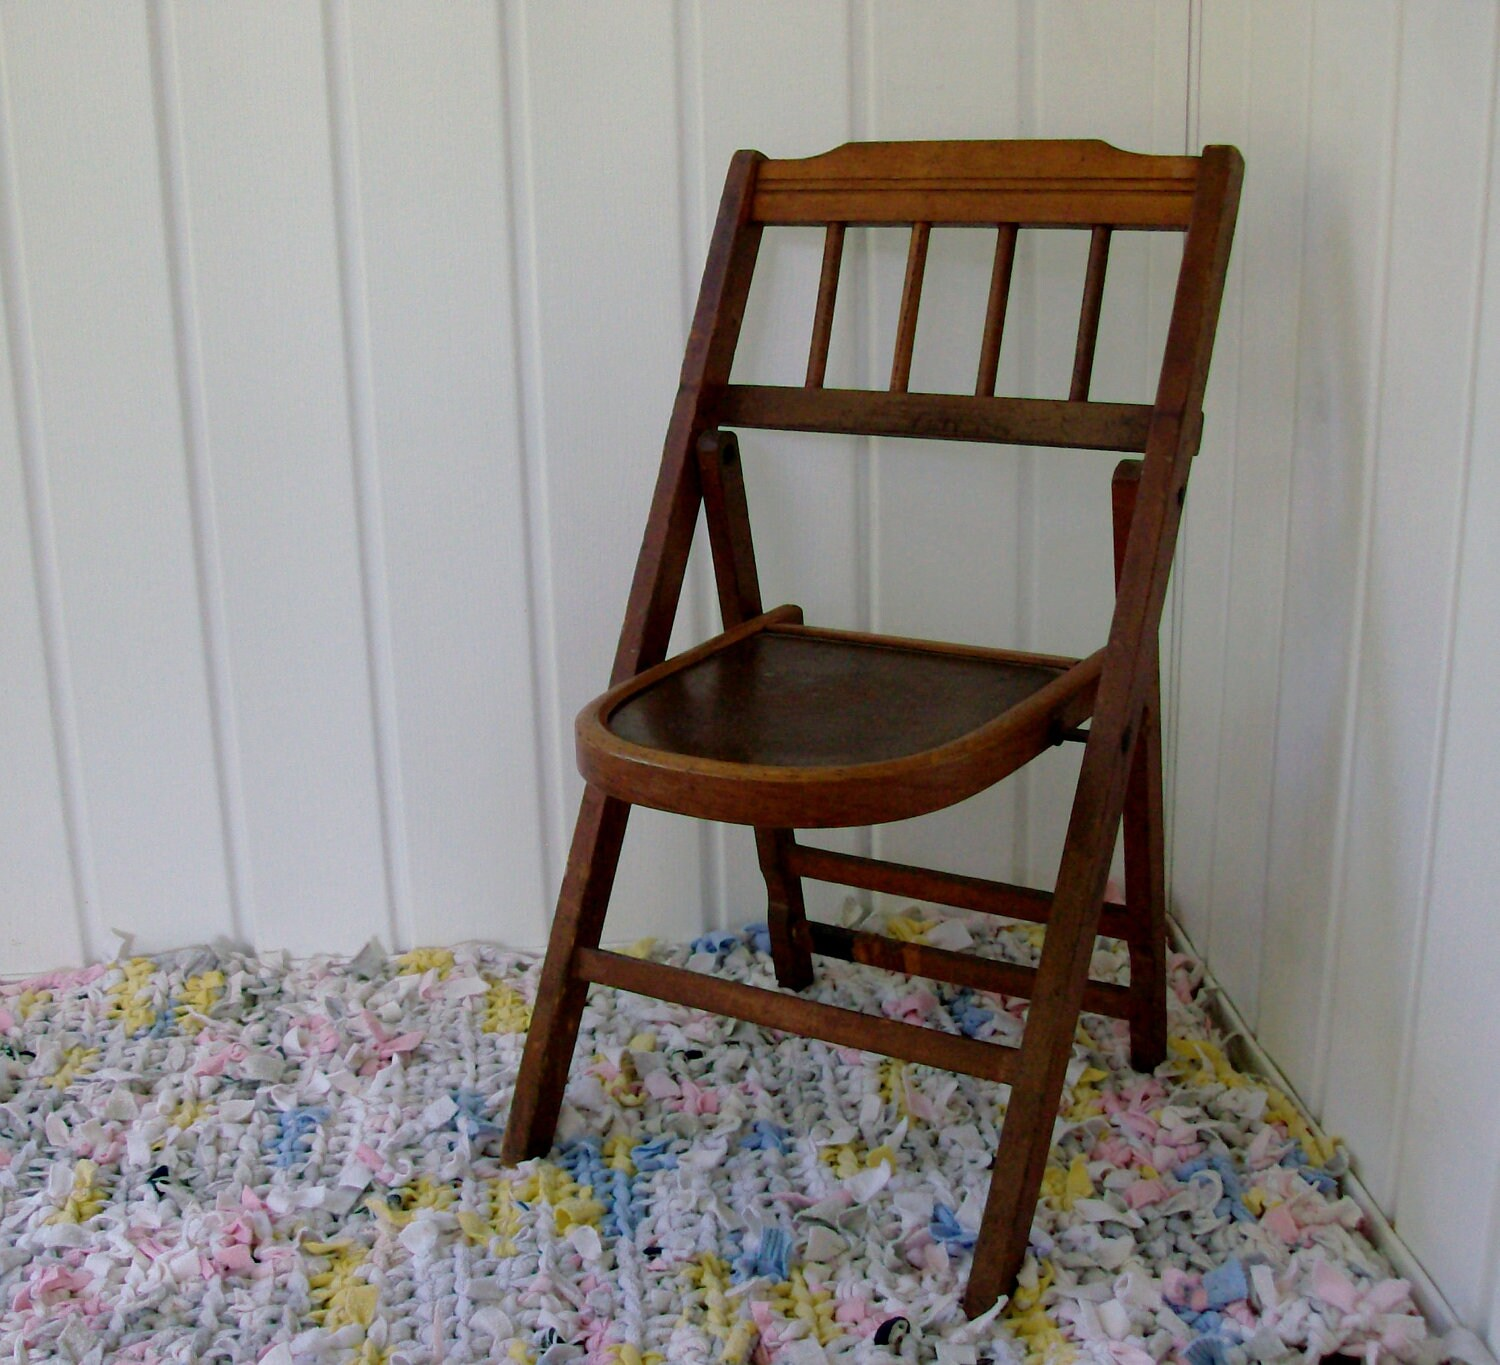 Items similar to 1940s Child s Folding Chair on Etsy